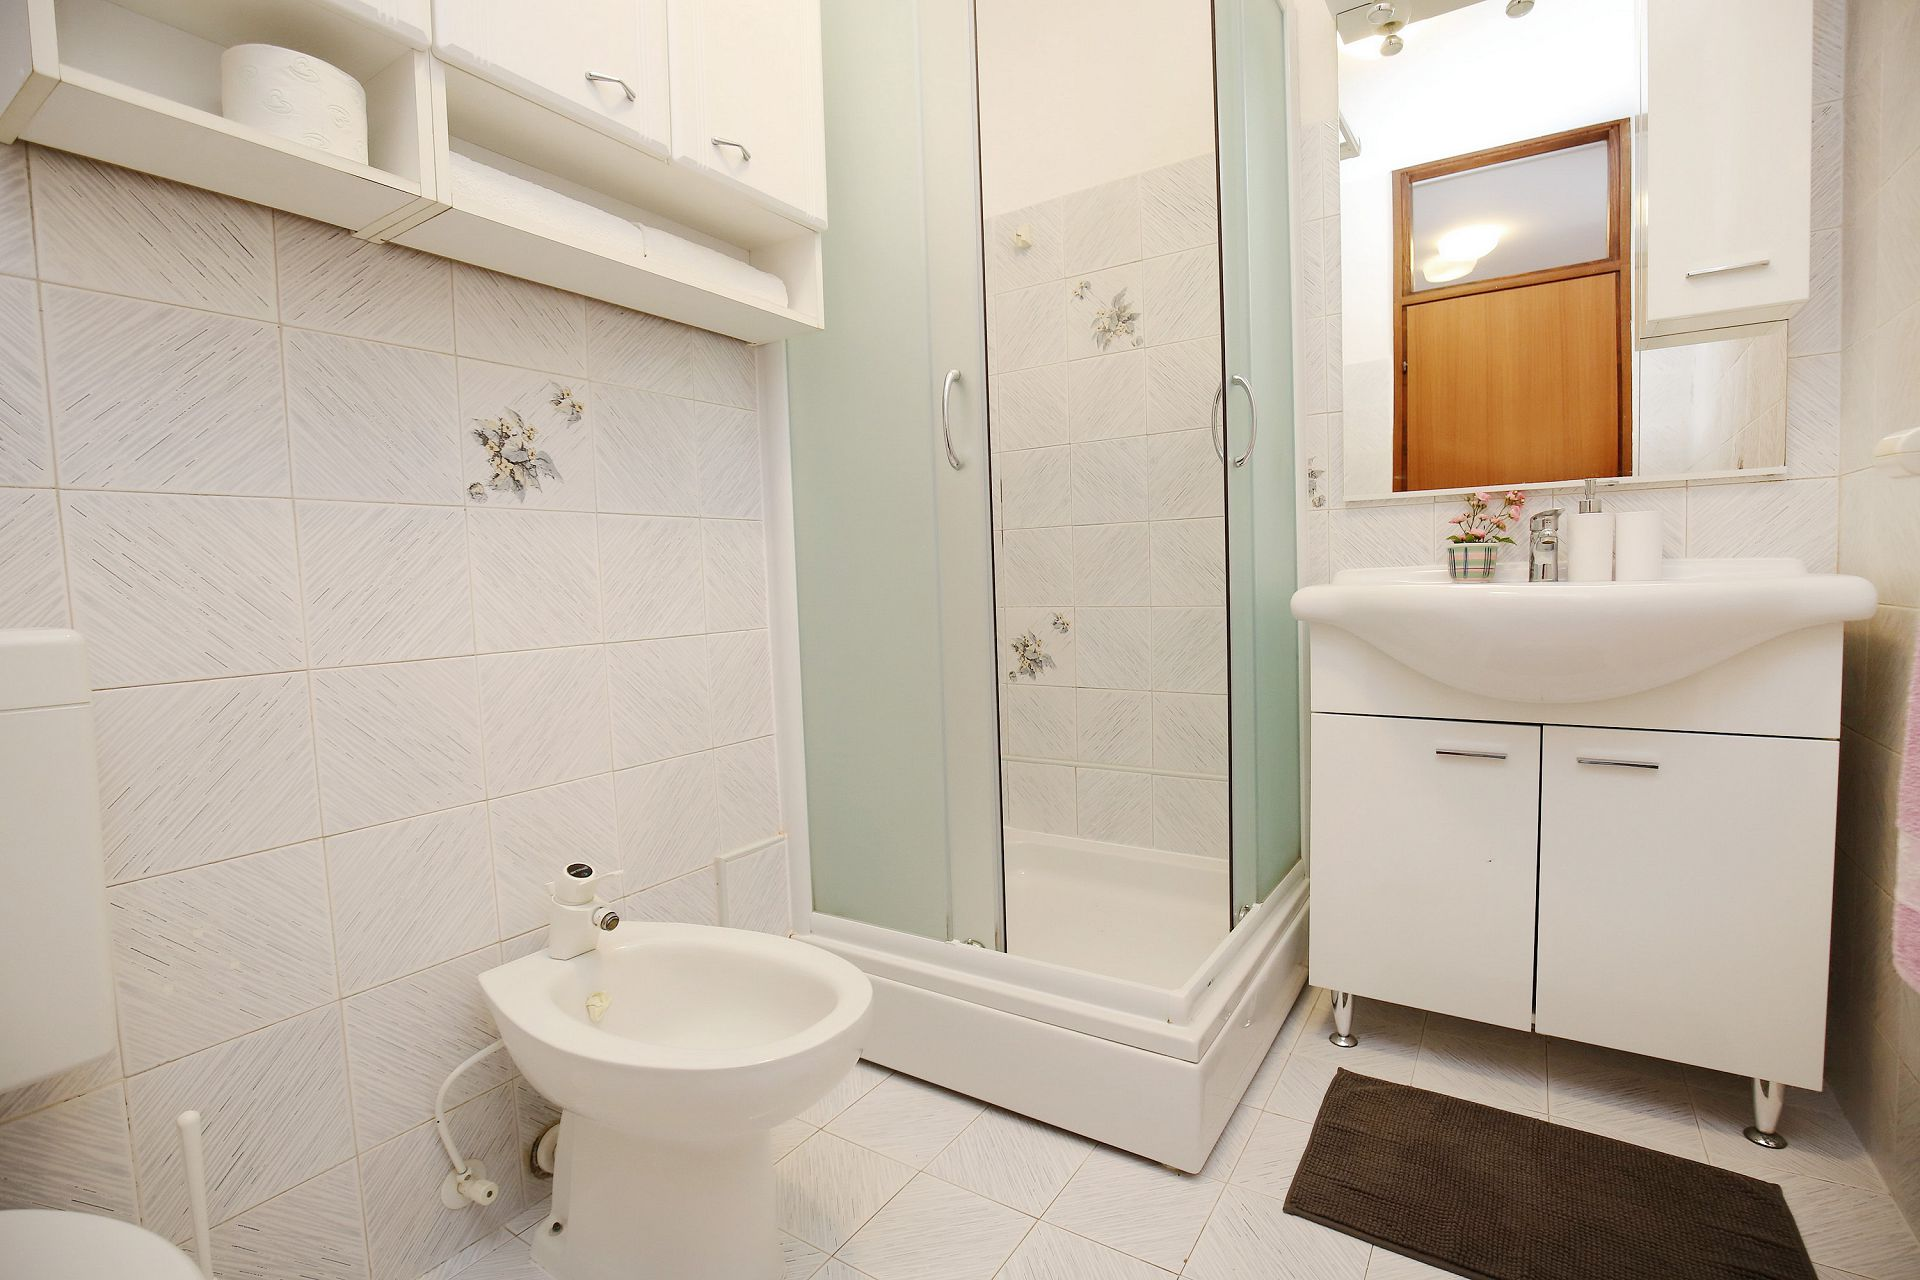 00418ZATZ - Zaton (Zadar) - Apartments Croatia - A2(2+2): bathroom with toilet